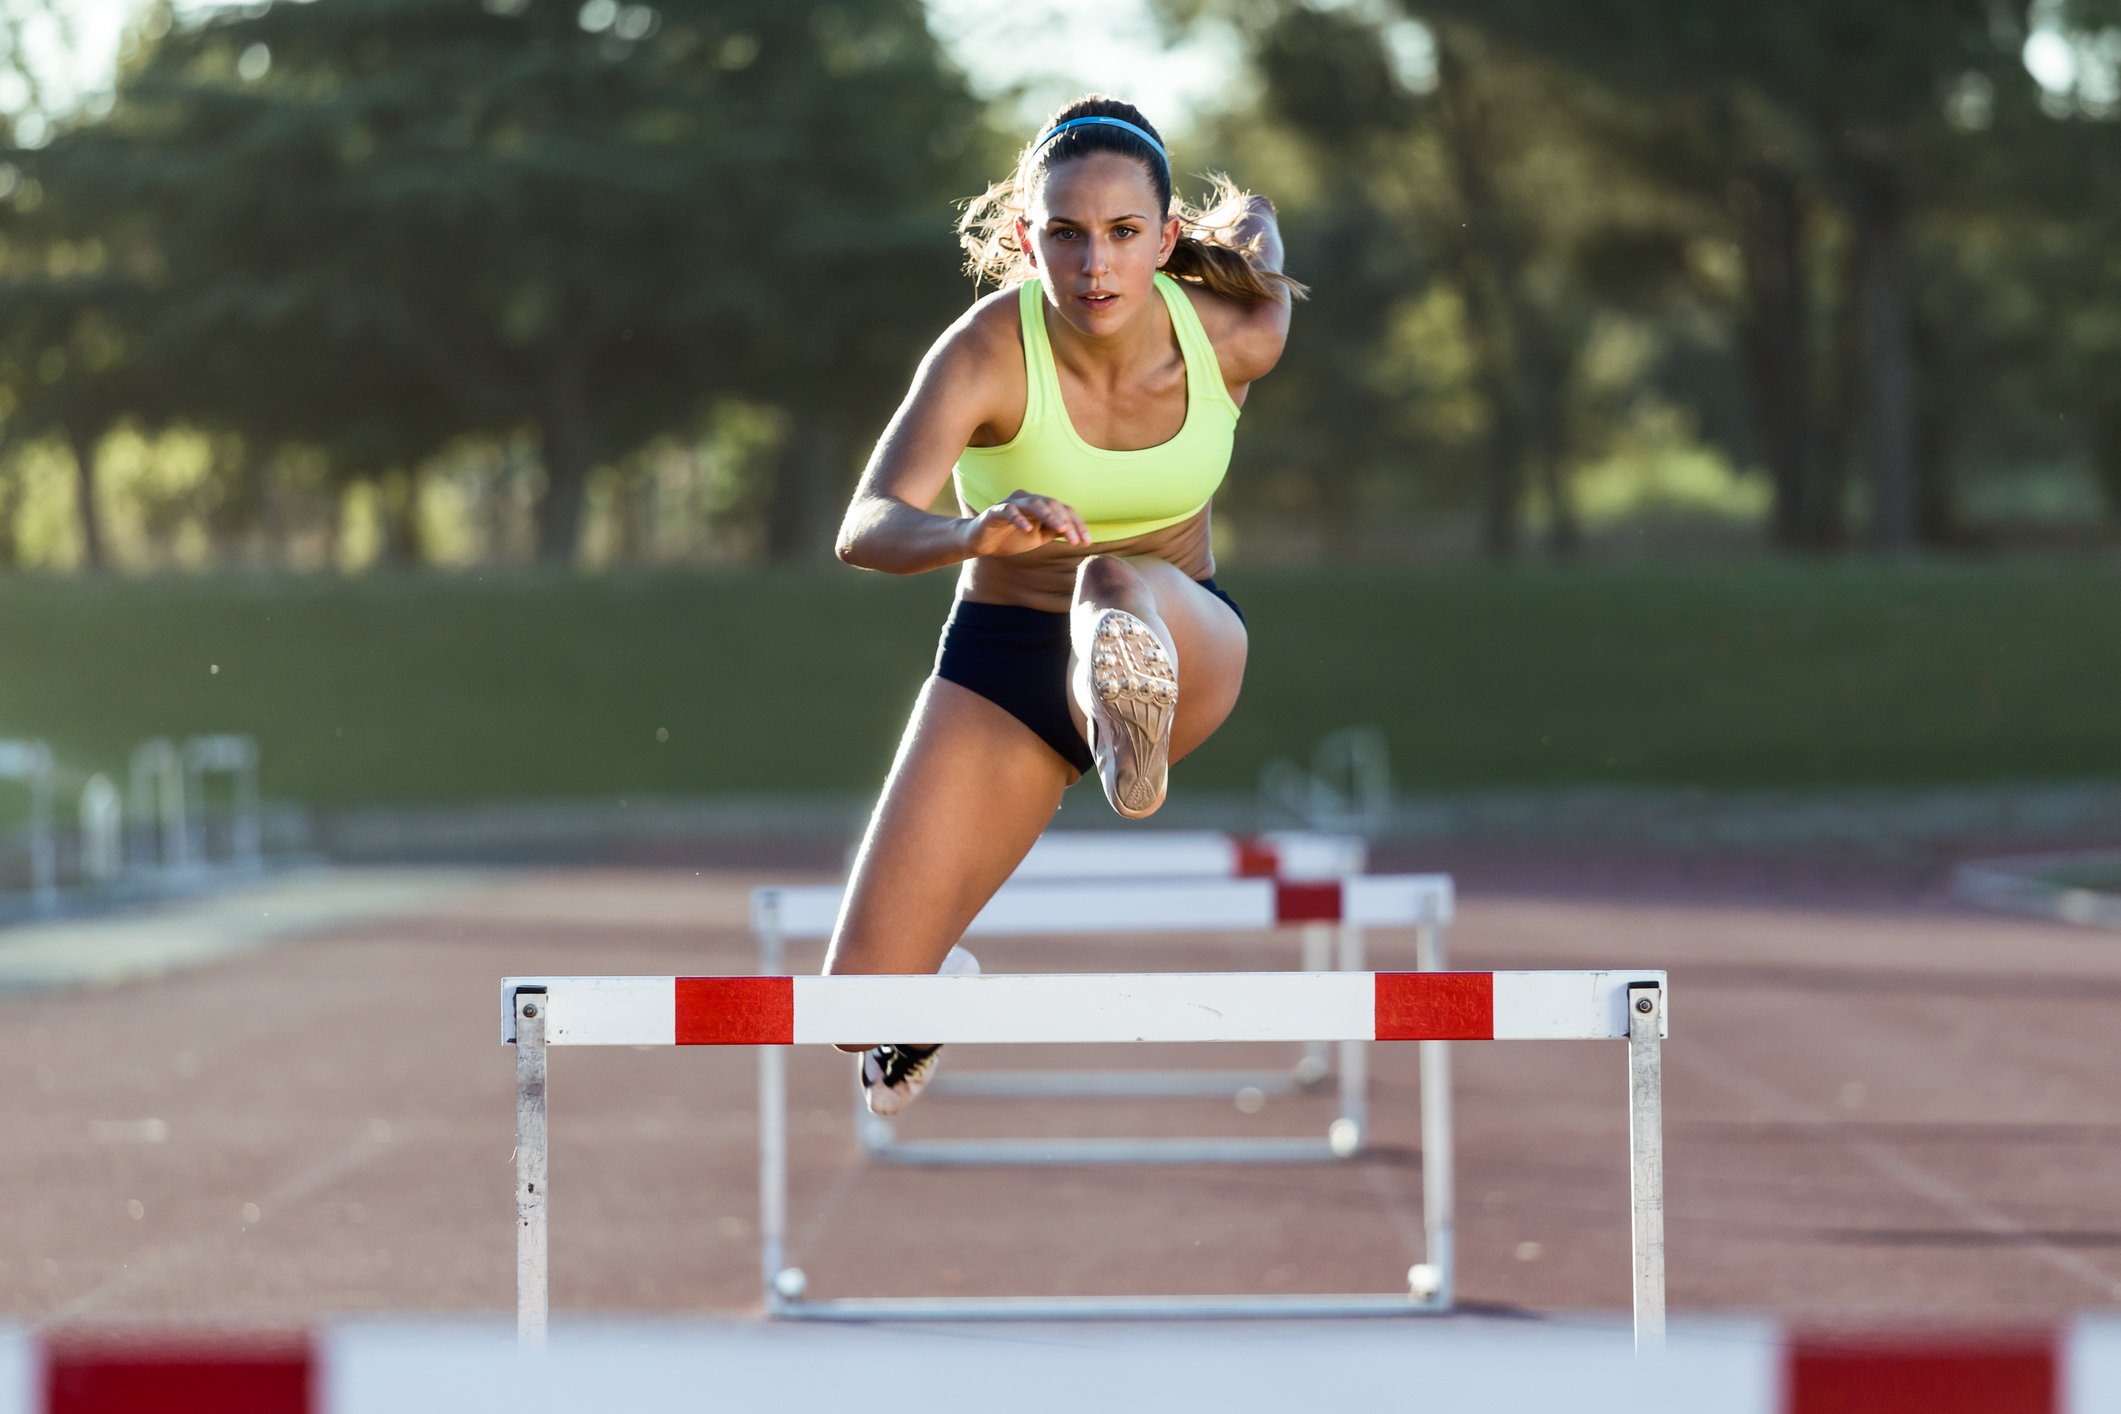 Female athlete jumping over hurdles